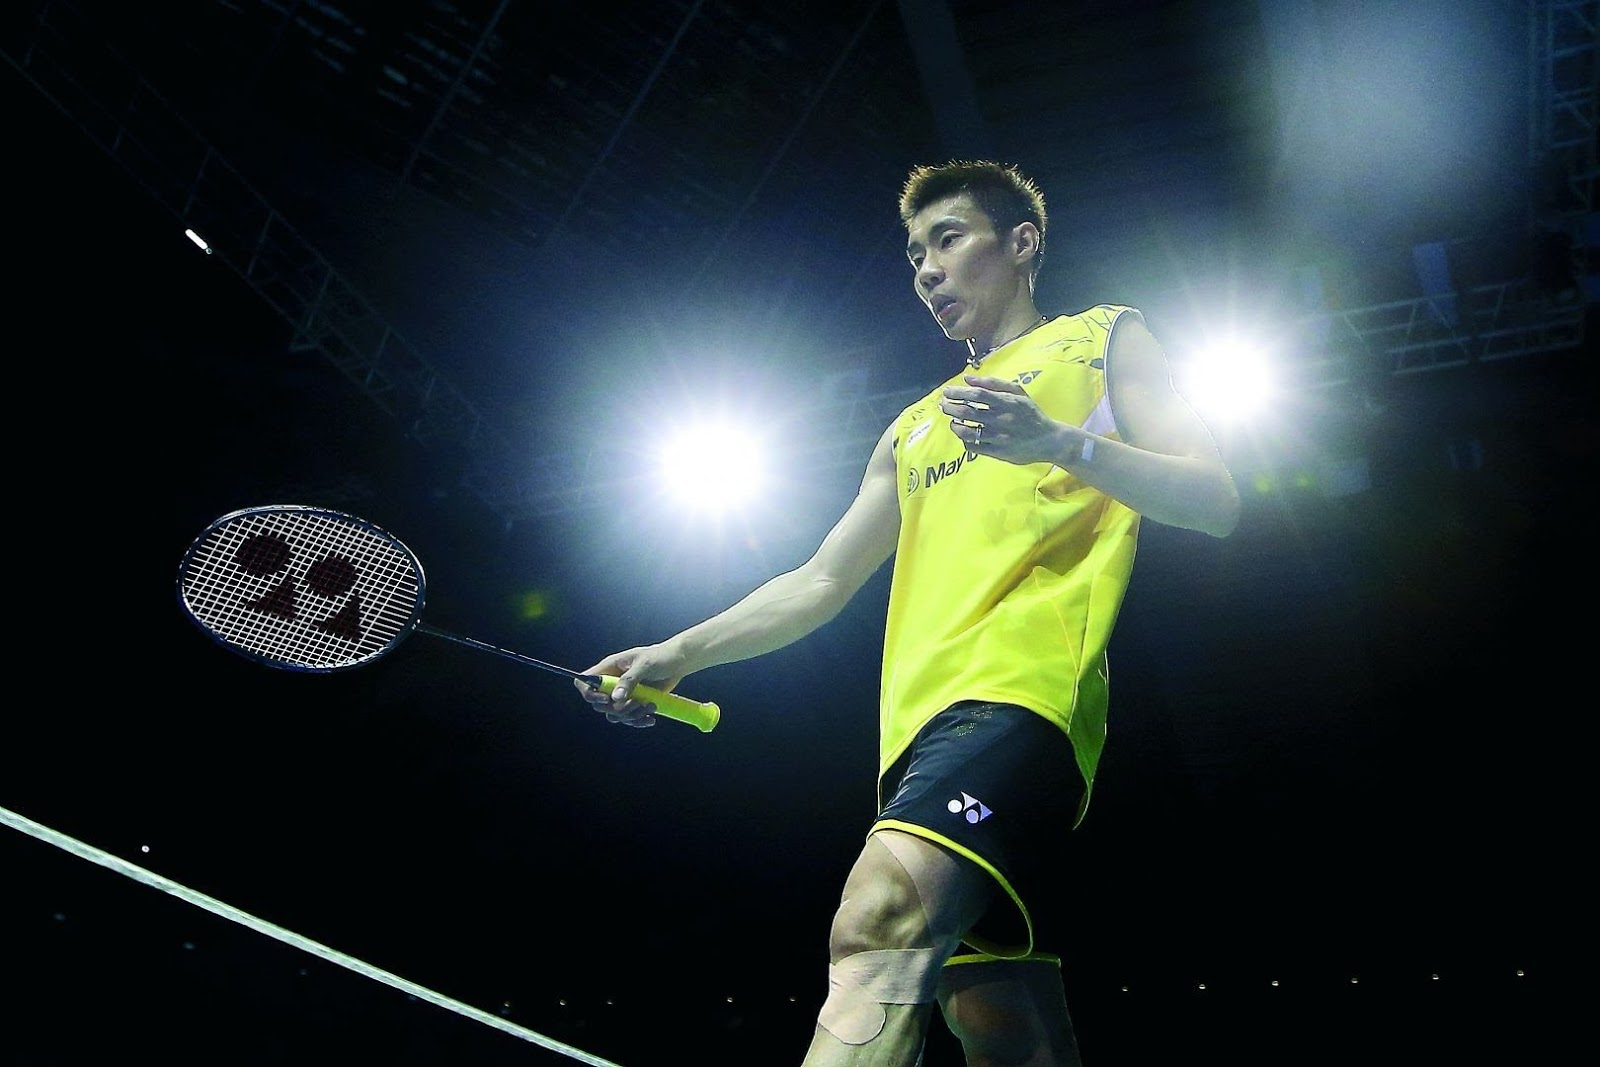 Lee Chong Wei's movie is in the making